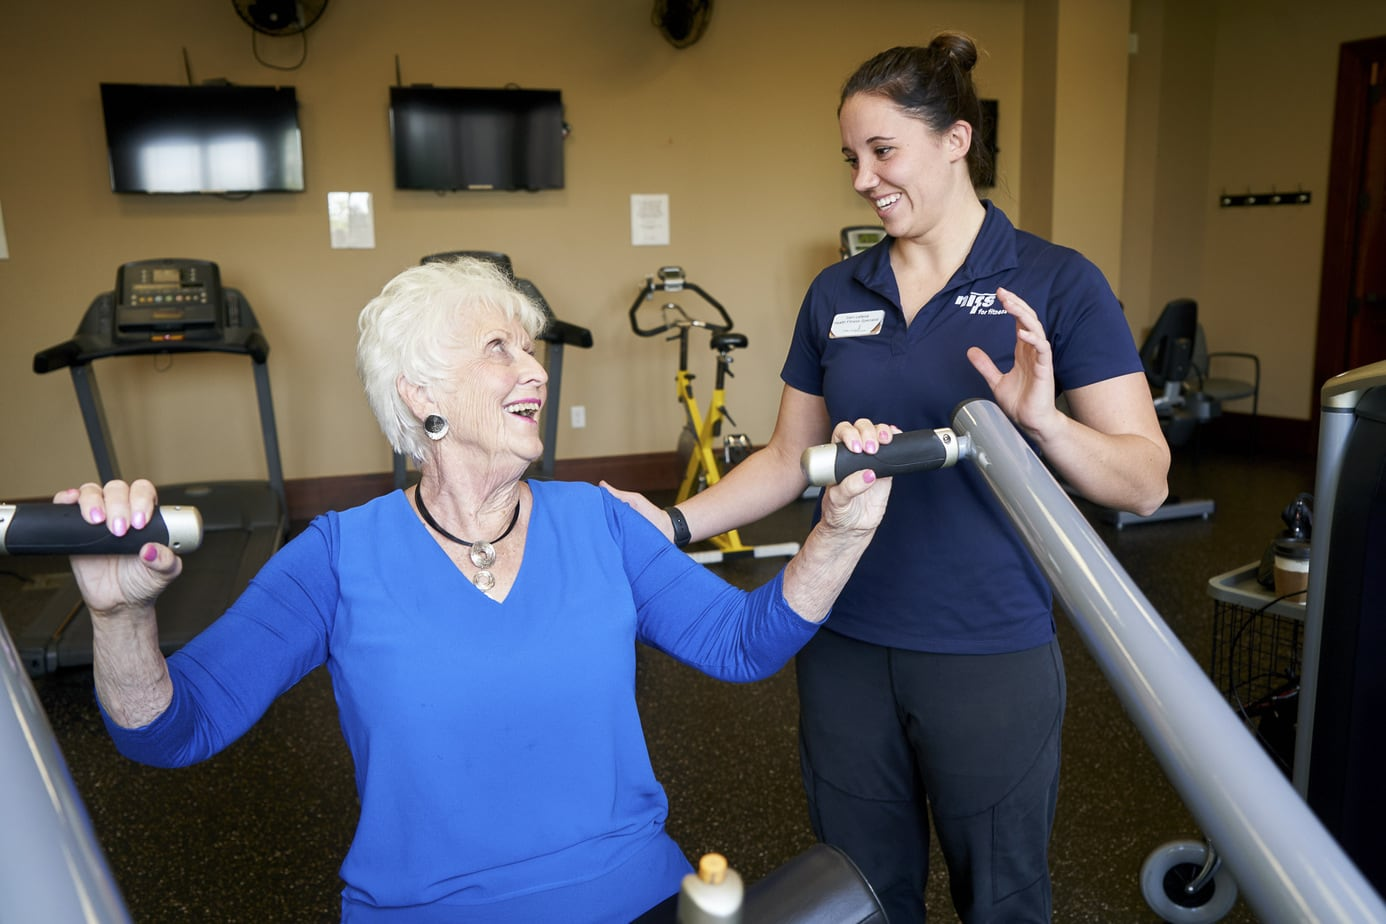 Retirement community photography. Active seniors exercising with staff member